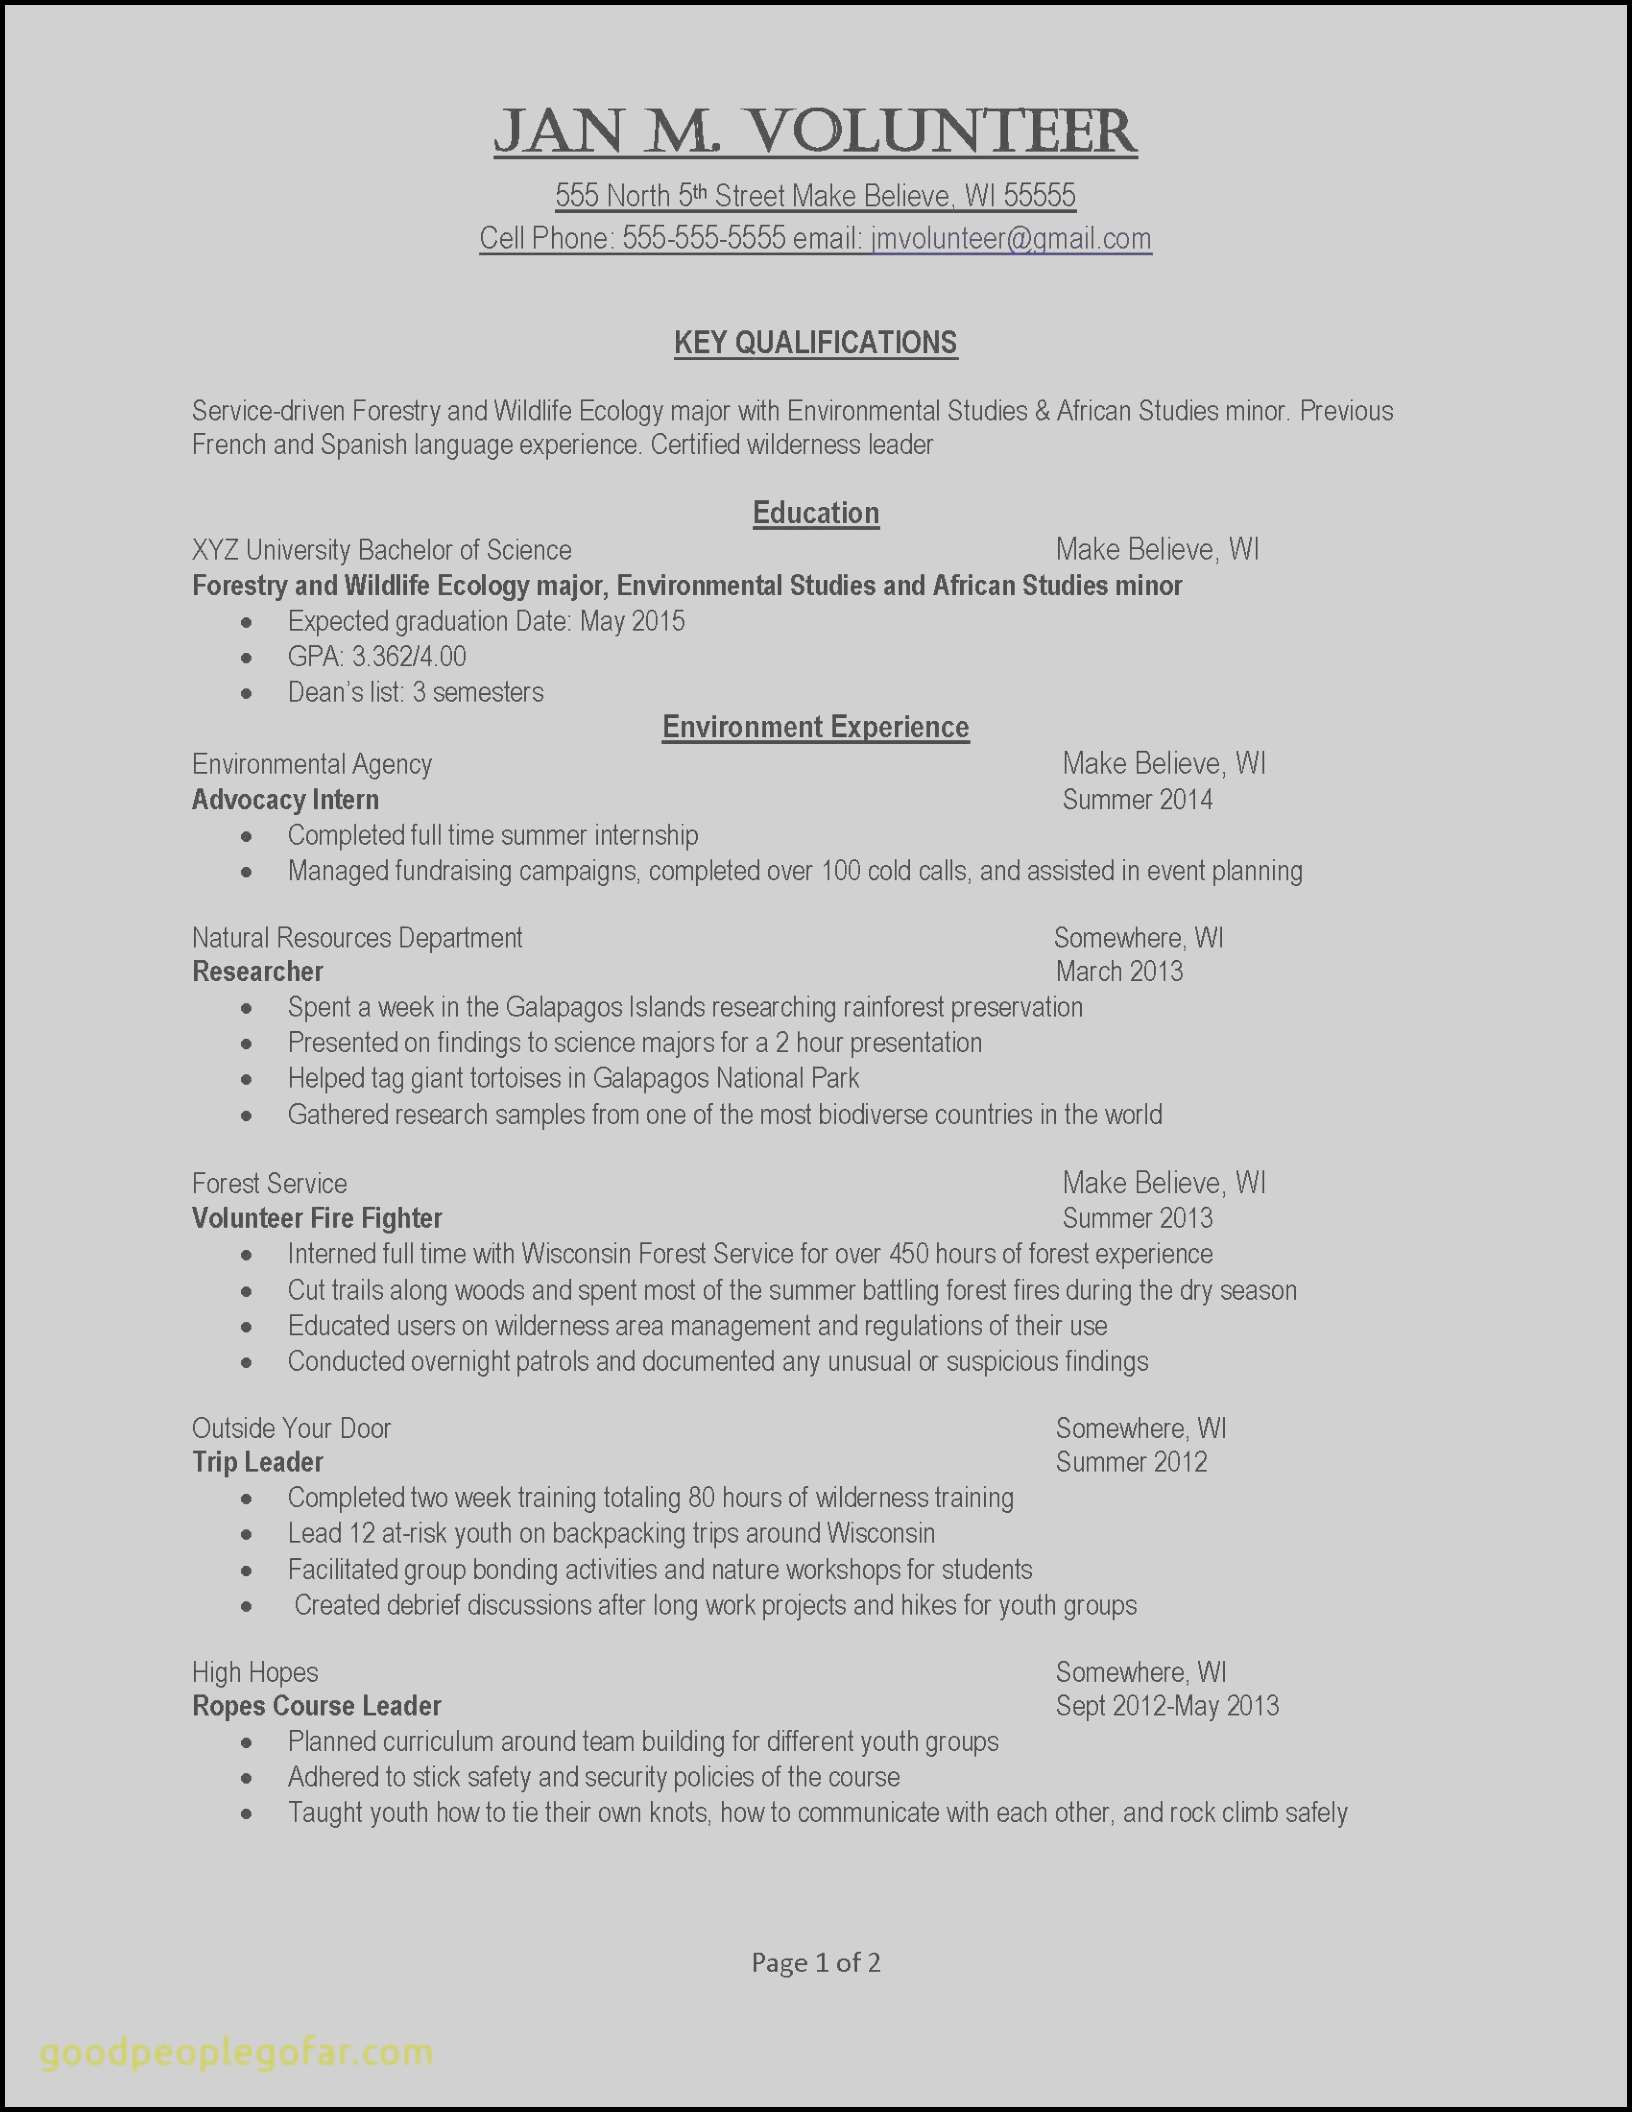 Resume Template Scientist - Resume Examples for Warehouse Position Recent Example Job Resume